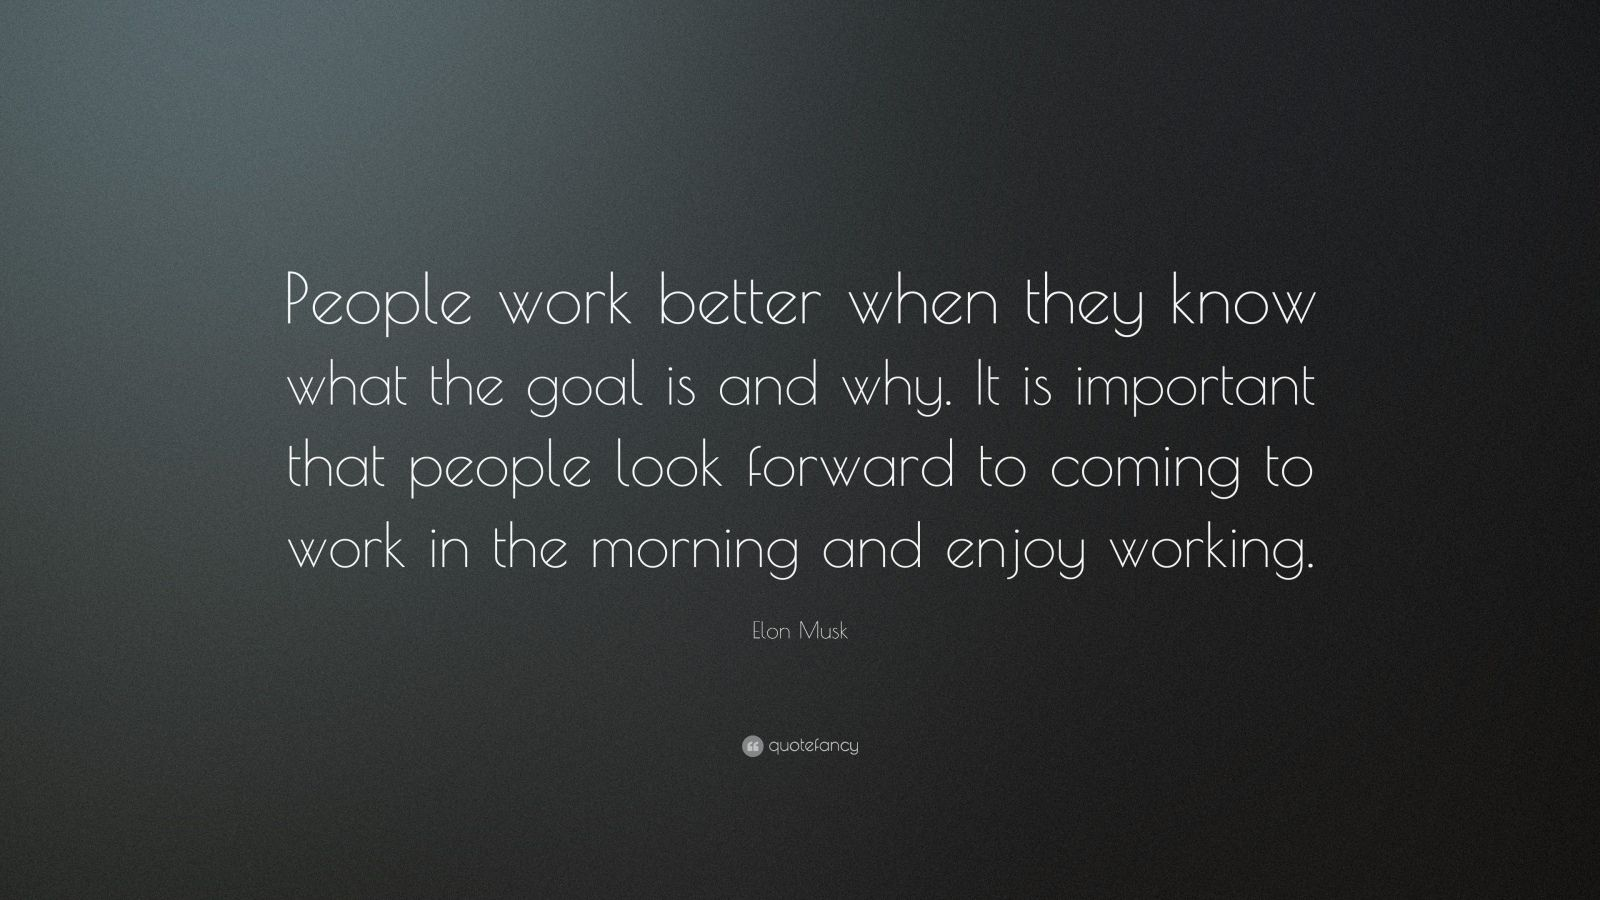 Gary Vaynerchuk Quotes Wallpaper Elon Musk Quote People Work Better When They Know What